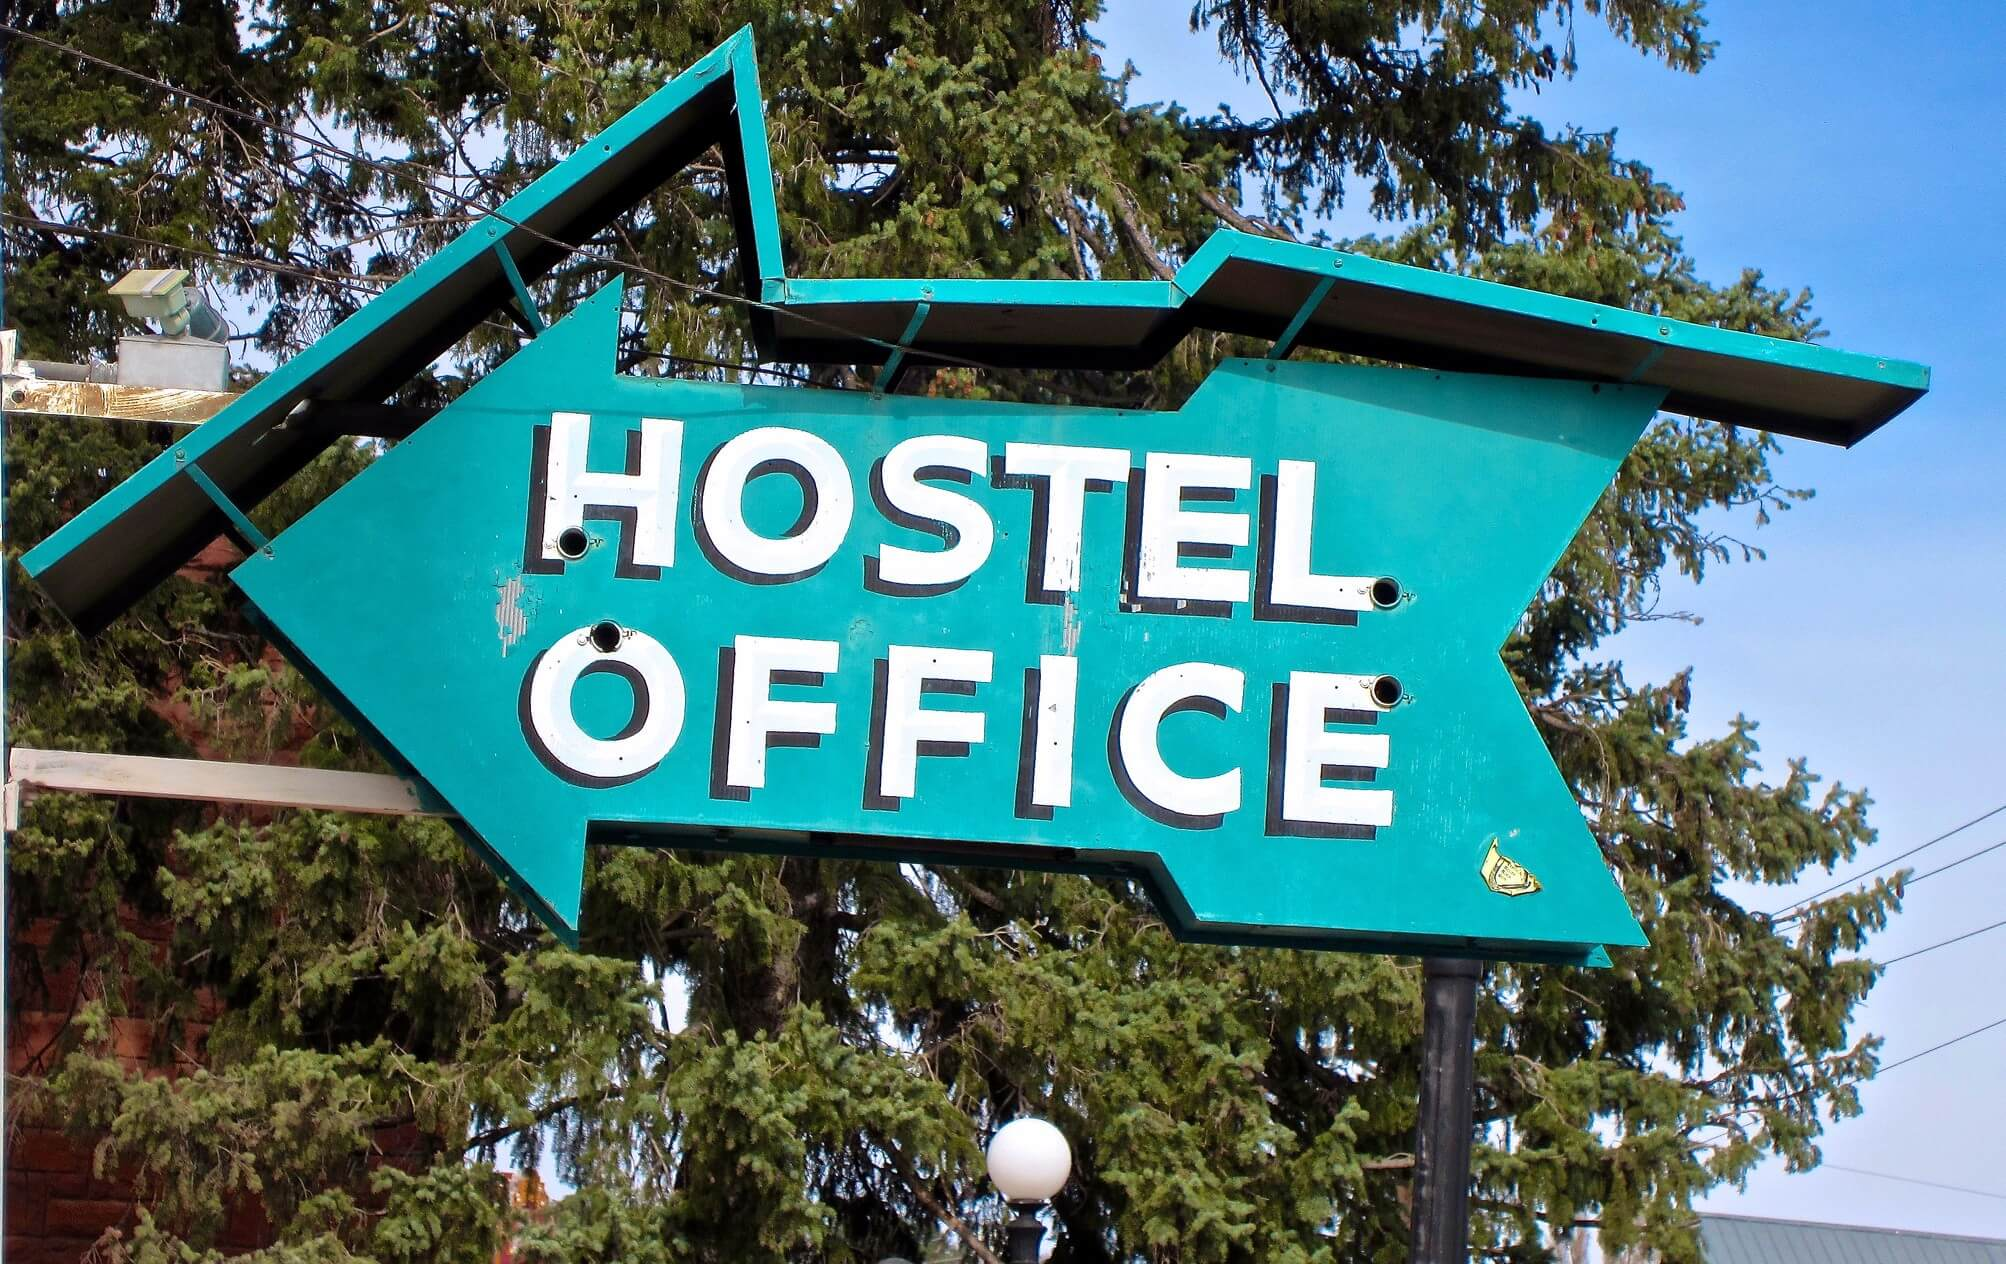 3 Incredible Hostels to Stay in When Visiting Beautiful Arizona